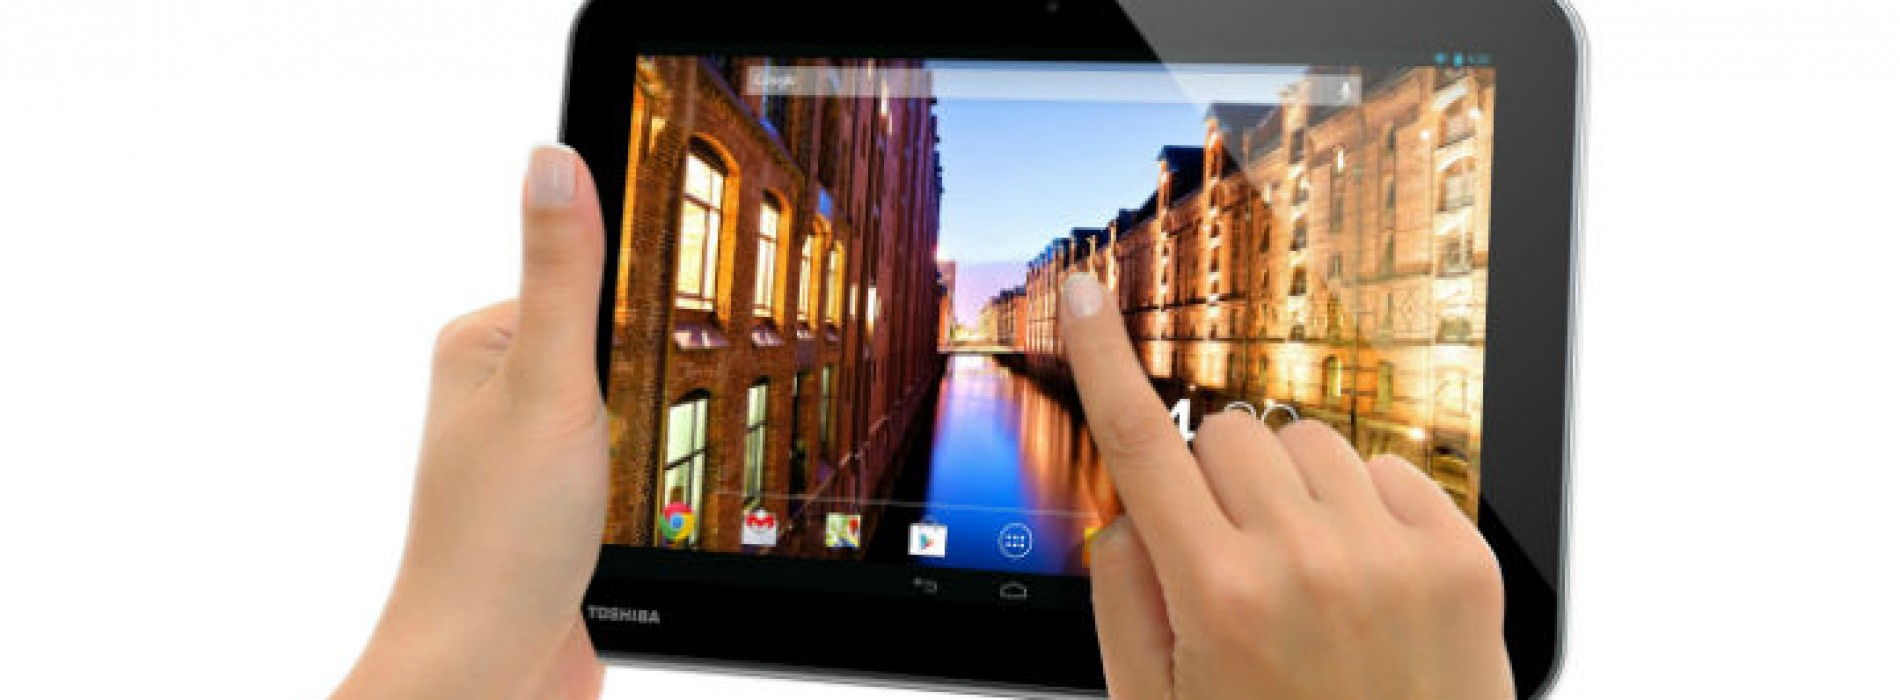 Toshiba bows refreshed Excite tablet line